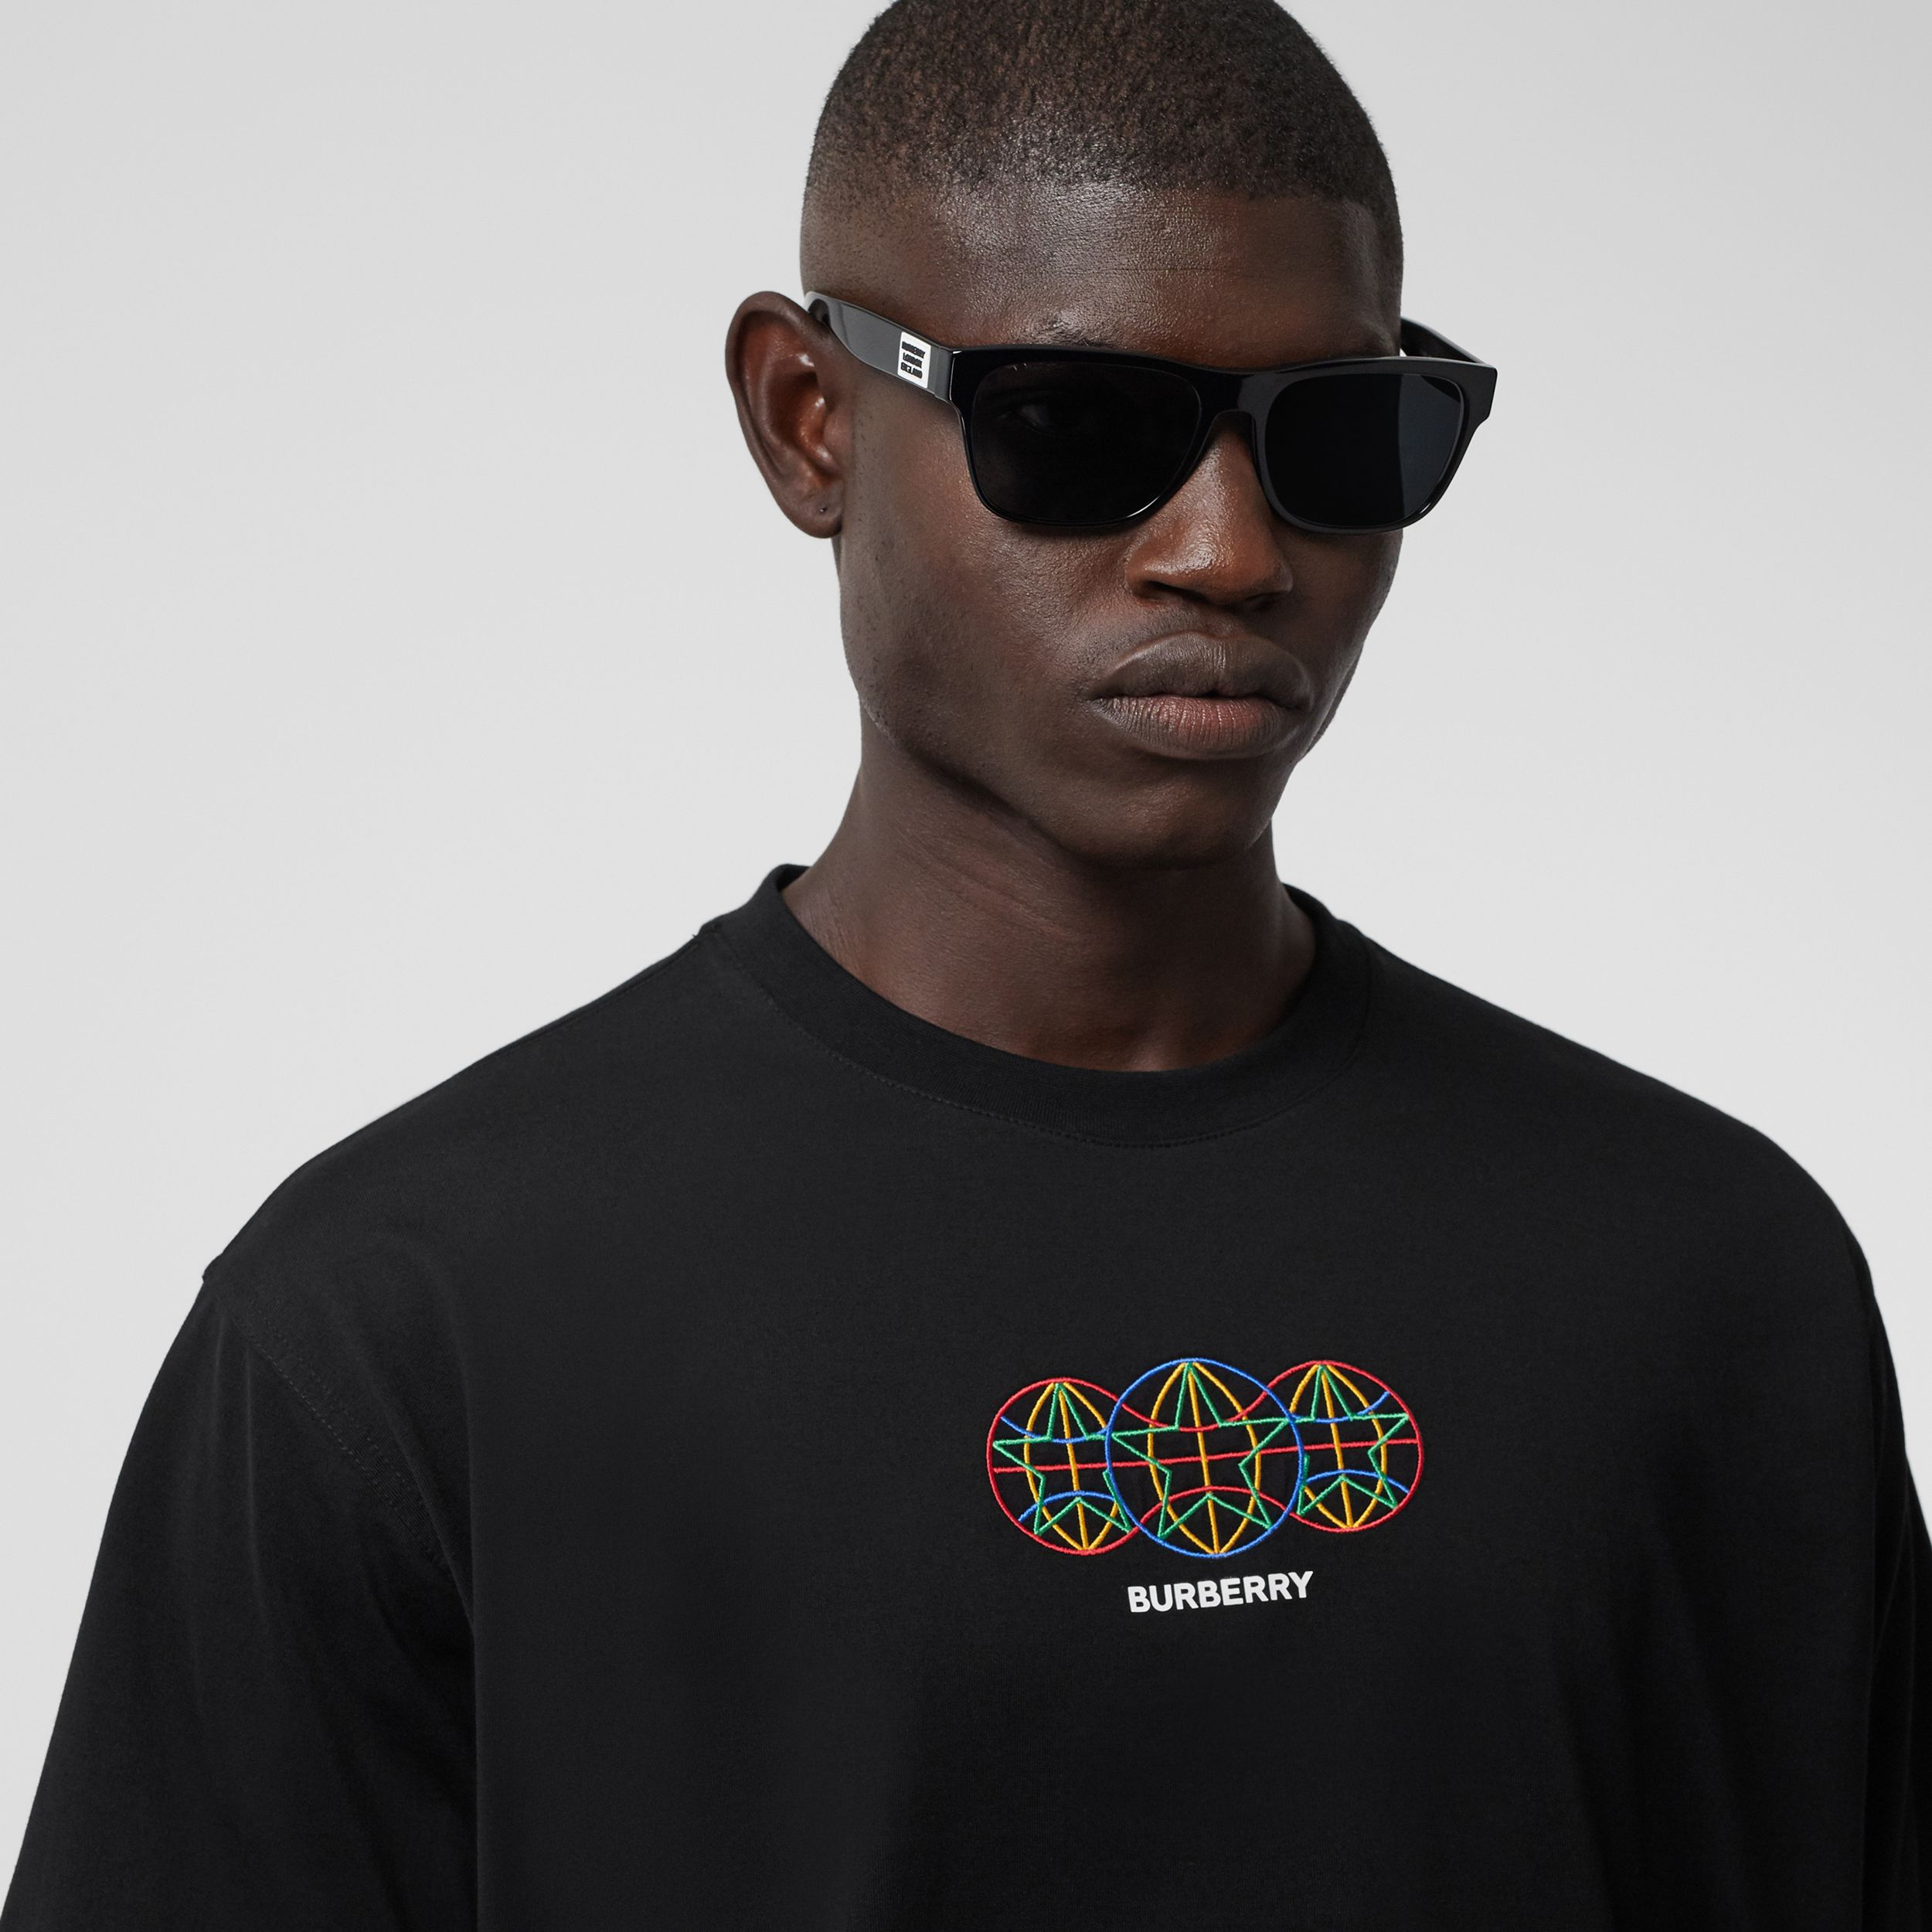 Embroidered Globe Graphic Cotton Oversized T-shirt in Black - Men | Burberry - 2